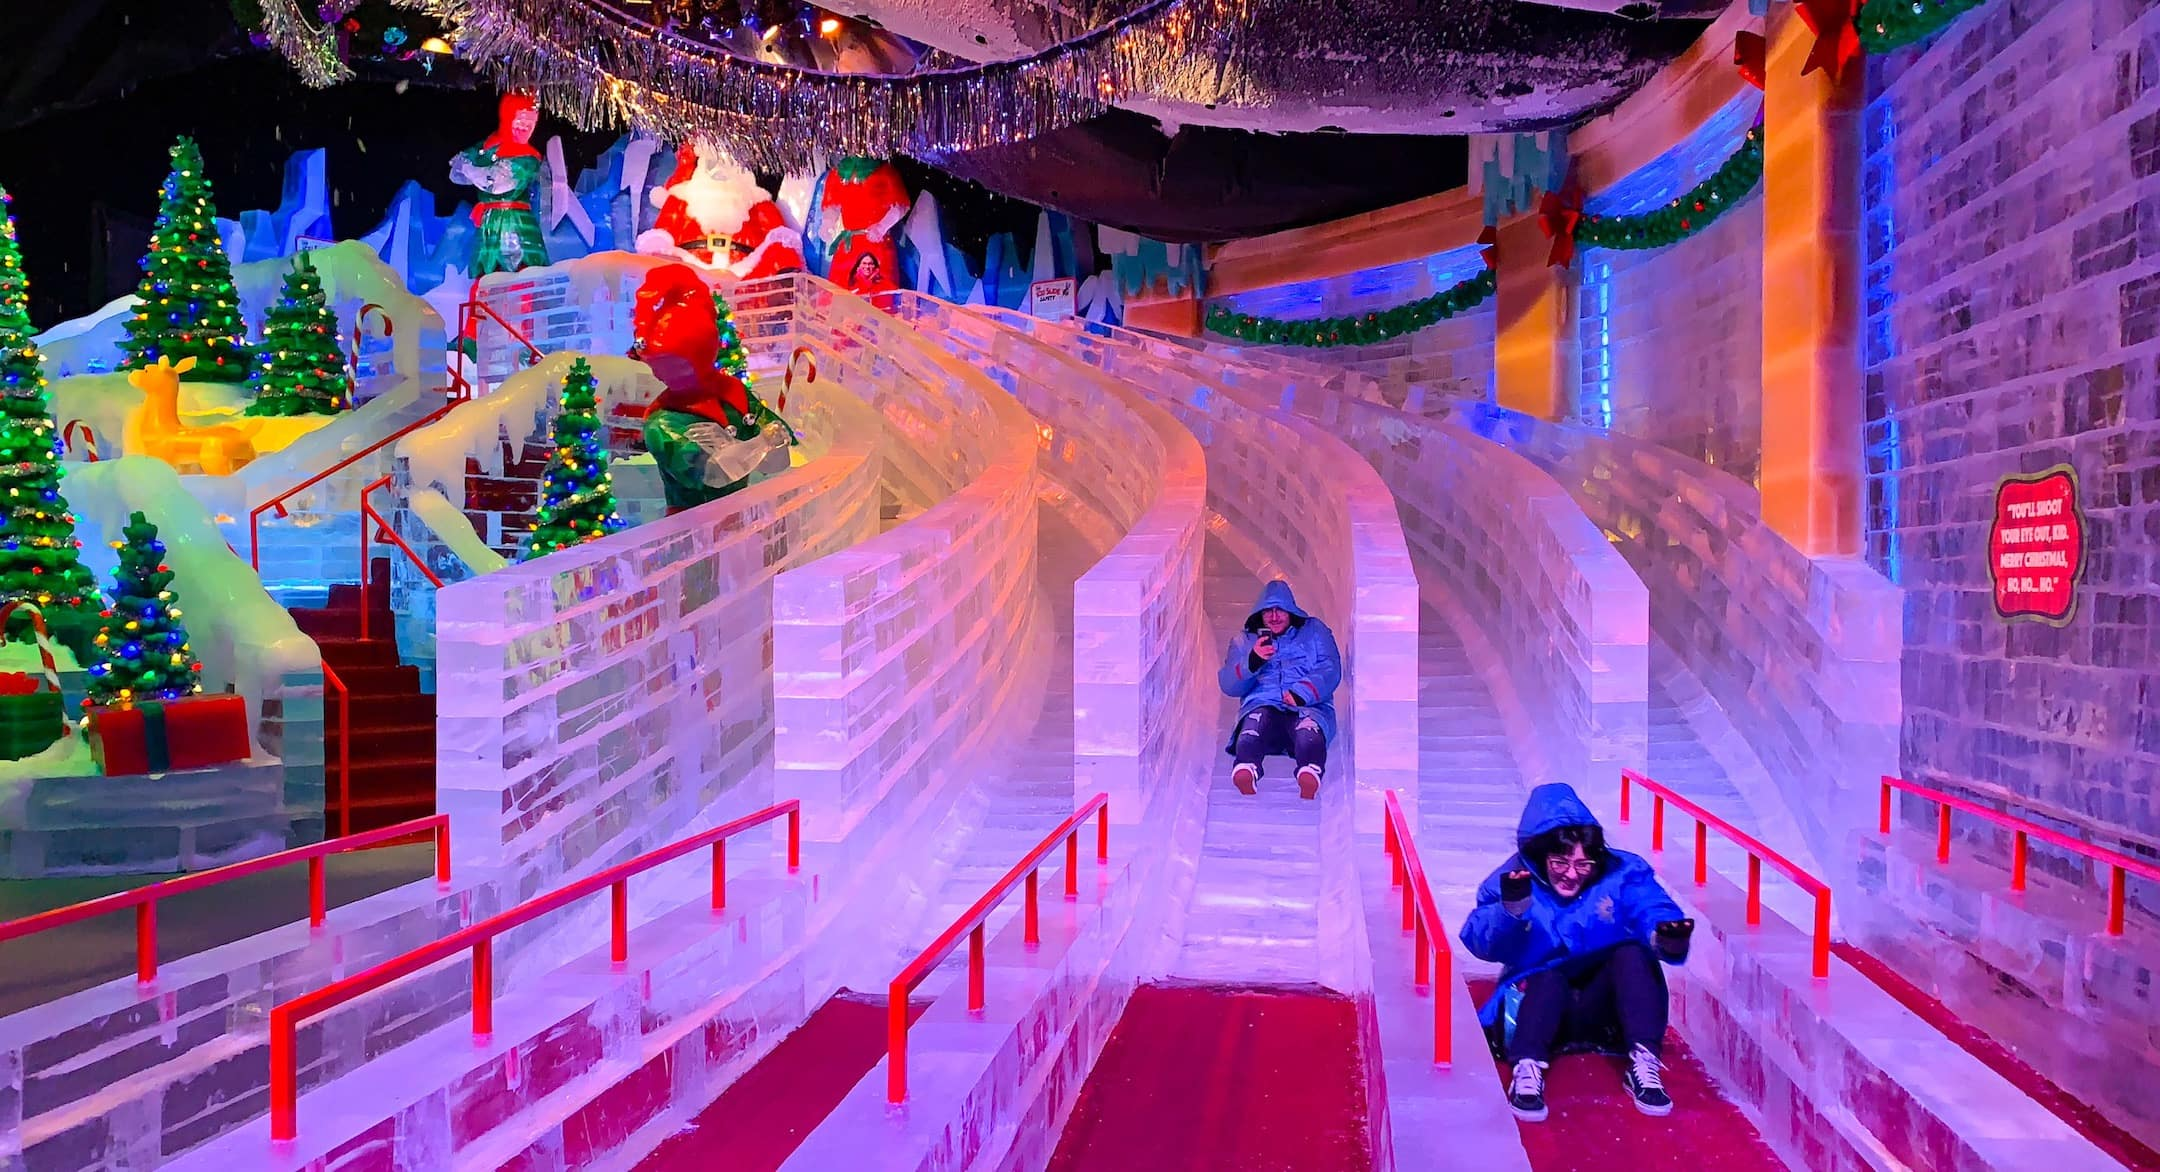 Gaylord Palms ICE 2018 A Christmas Story Orlando Ice Slides Curving